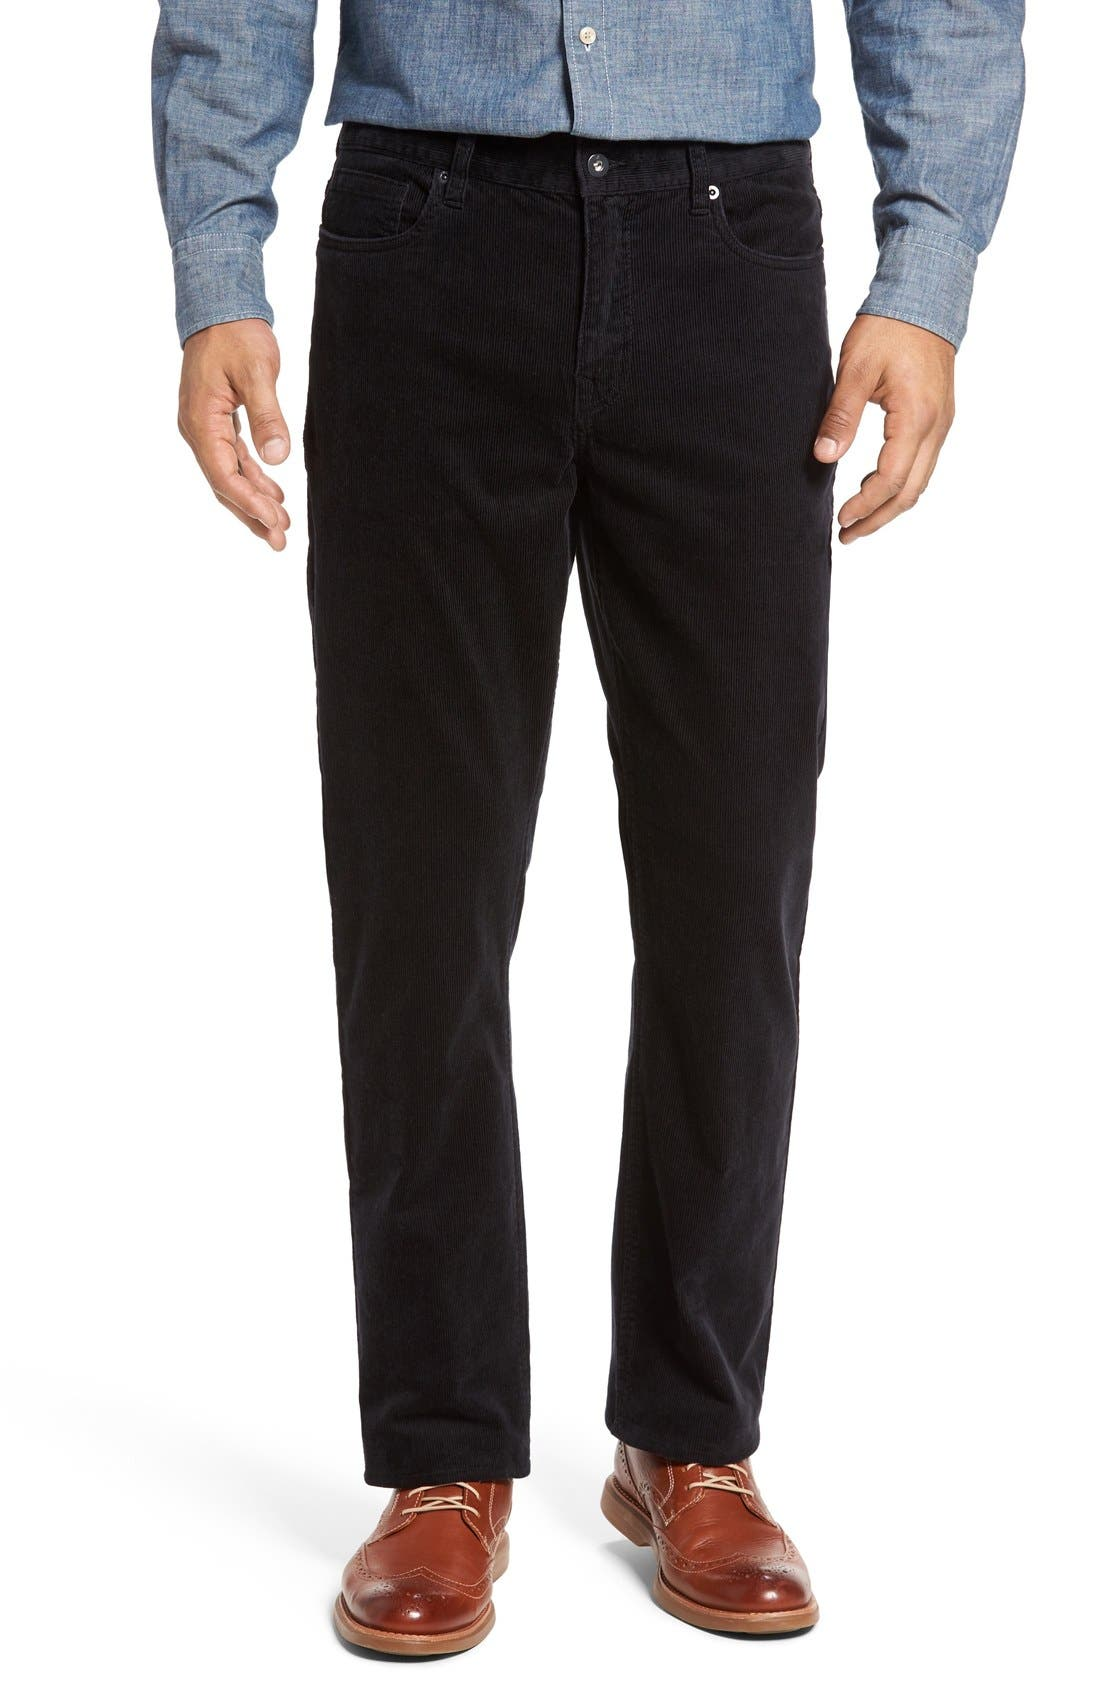 Greenwood Stretch Corduroy Pants,                             Main thumbnail 1, color,                             BLACK